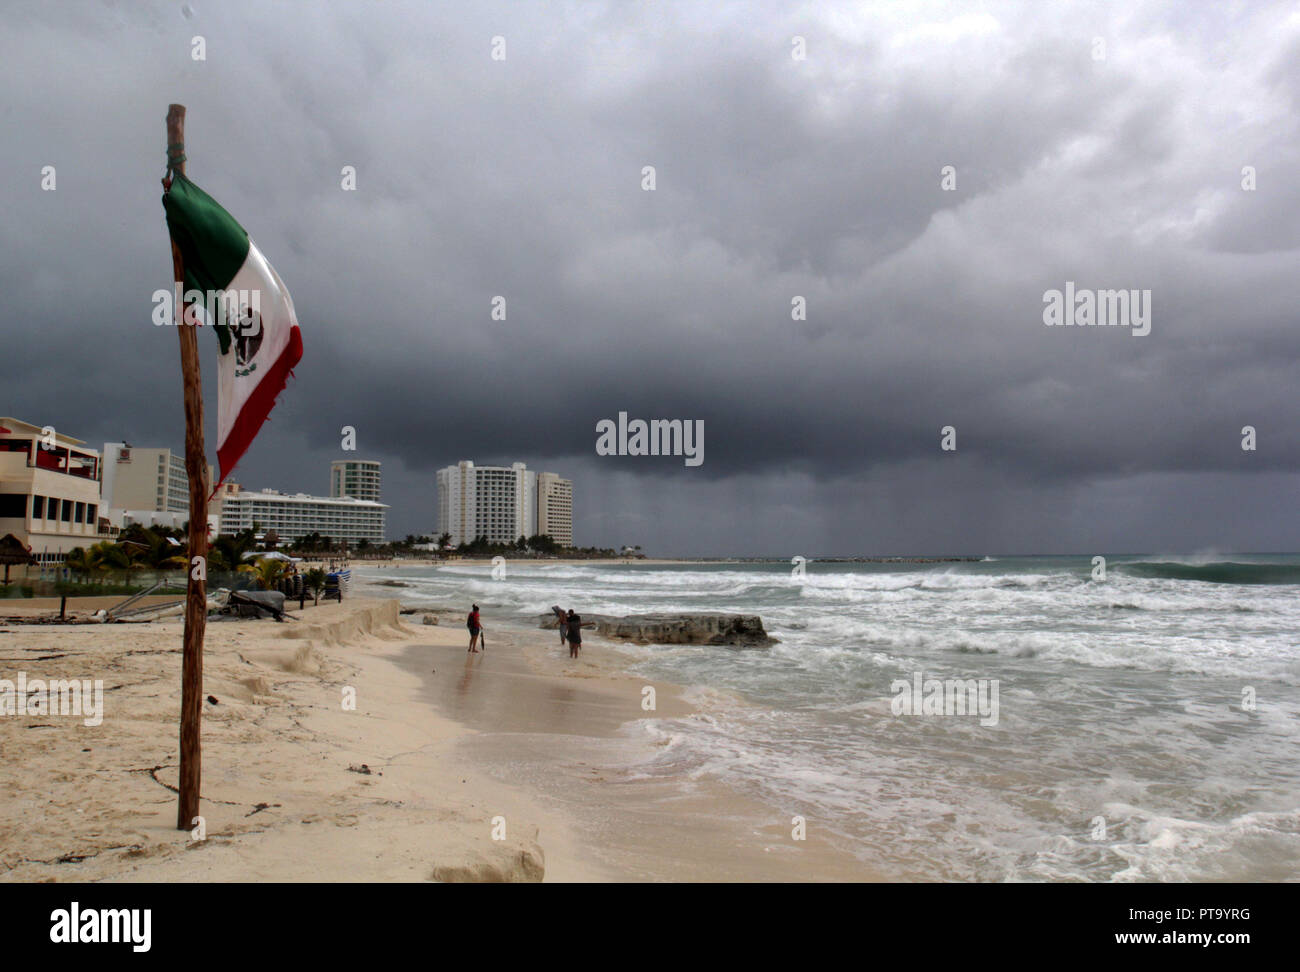 A View Of The Effects Of Hurricane Micharl In Cancun Quintana Roo Mexico 08 October 2018